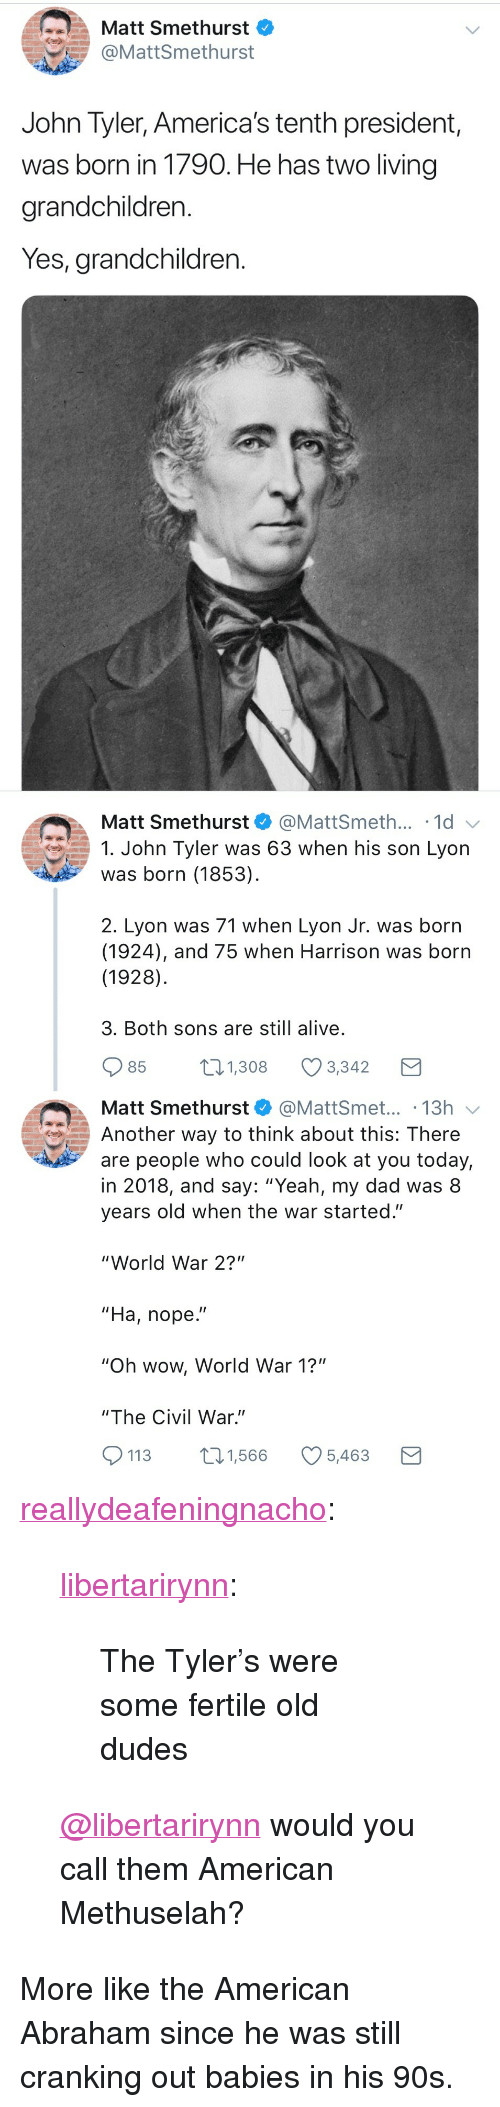 "Alive, Dad, and Tumblr: Matt Smethurst  @MattSmethurst  John Tyler, America's tenth president,  was born in 1790. He has two living  grandchildren.  Yes, grandchildren.   Matt Smethurst  @MattSmeth... 1d  1. John Tyler was 63 when his son Lyon  was born (1853)  2. Lyon was 71 when Lyon Jr. was born  (1924), and 75 when Harrison was born  (1928)  3. Both sons are still alive  85  1.308 Ø3342  Matt Smethurst@MattSmet... .13h  Another way to think about this: There  are people who could look at you today,  in 2018, and say: ""Yeah, my dad was 8  years old when the war started.""  ""World War 2?""  ""Ha, nope.""  ""Oh wow, World War 1?""  ""The Civil War.""  113 1,566 5,463 <p><a href=""https://reallydeafeningnacho.tumblr.com/post/173045101930/libertarirynn-the-tylers-were-some-fertile-old"" class=""tumblr_blog"">reallydeafeningnacho</a>:</p>  <blockquote><p><a href=""https://libertarirynn.tumblr.com/post/173045075664/the-tylers-were-some-fertile-old-dudes"" class=""tumblr_blog"">libertarirynn</a>:</p><blockquote><p>The Tyler's were some fertile old dudes</p></blockquote> <p><a class=""tumblelog"" href=""https://tmblr.co/mZHrjydhp9oUbxMGBDJA8rw"">@libertarirynn</a> would you call them American Methuselah?</p></blockquote>  <p>More like the American Abraham since he was still cranking out babies in his 90s.</p>"